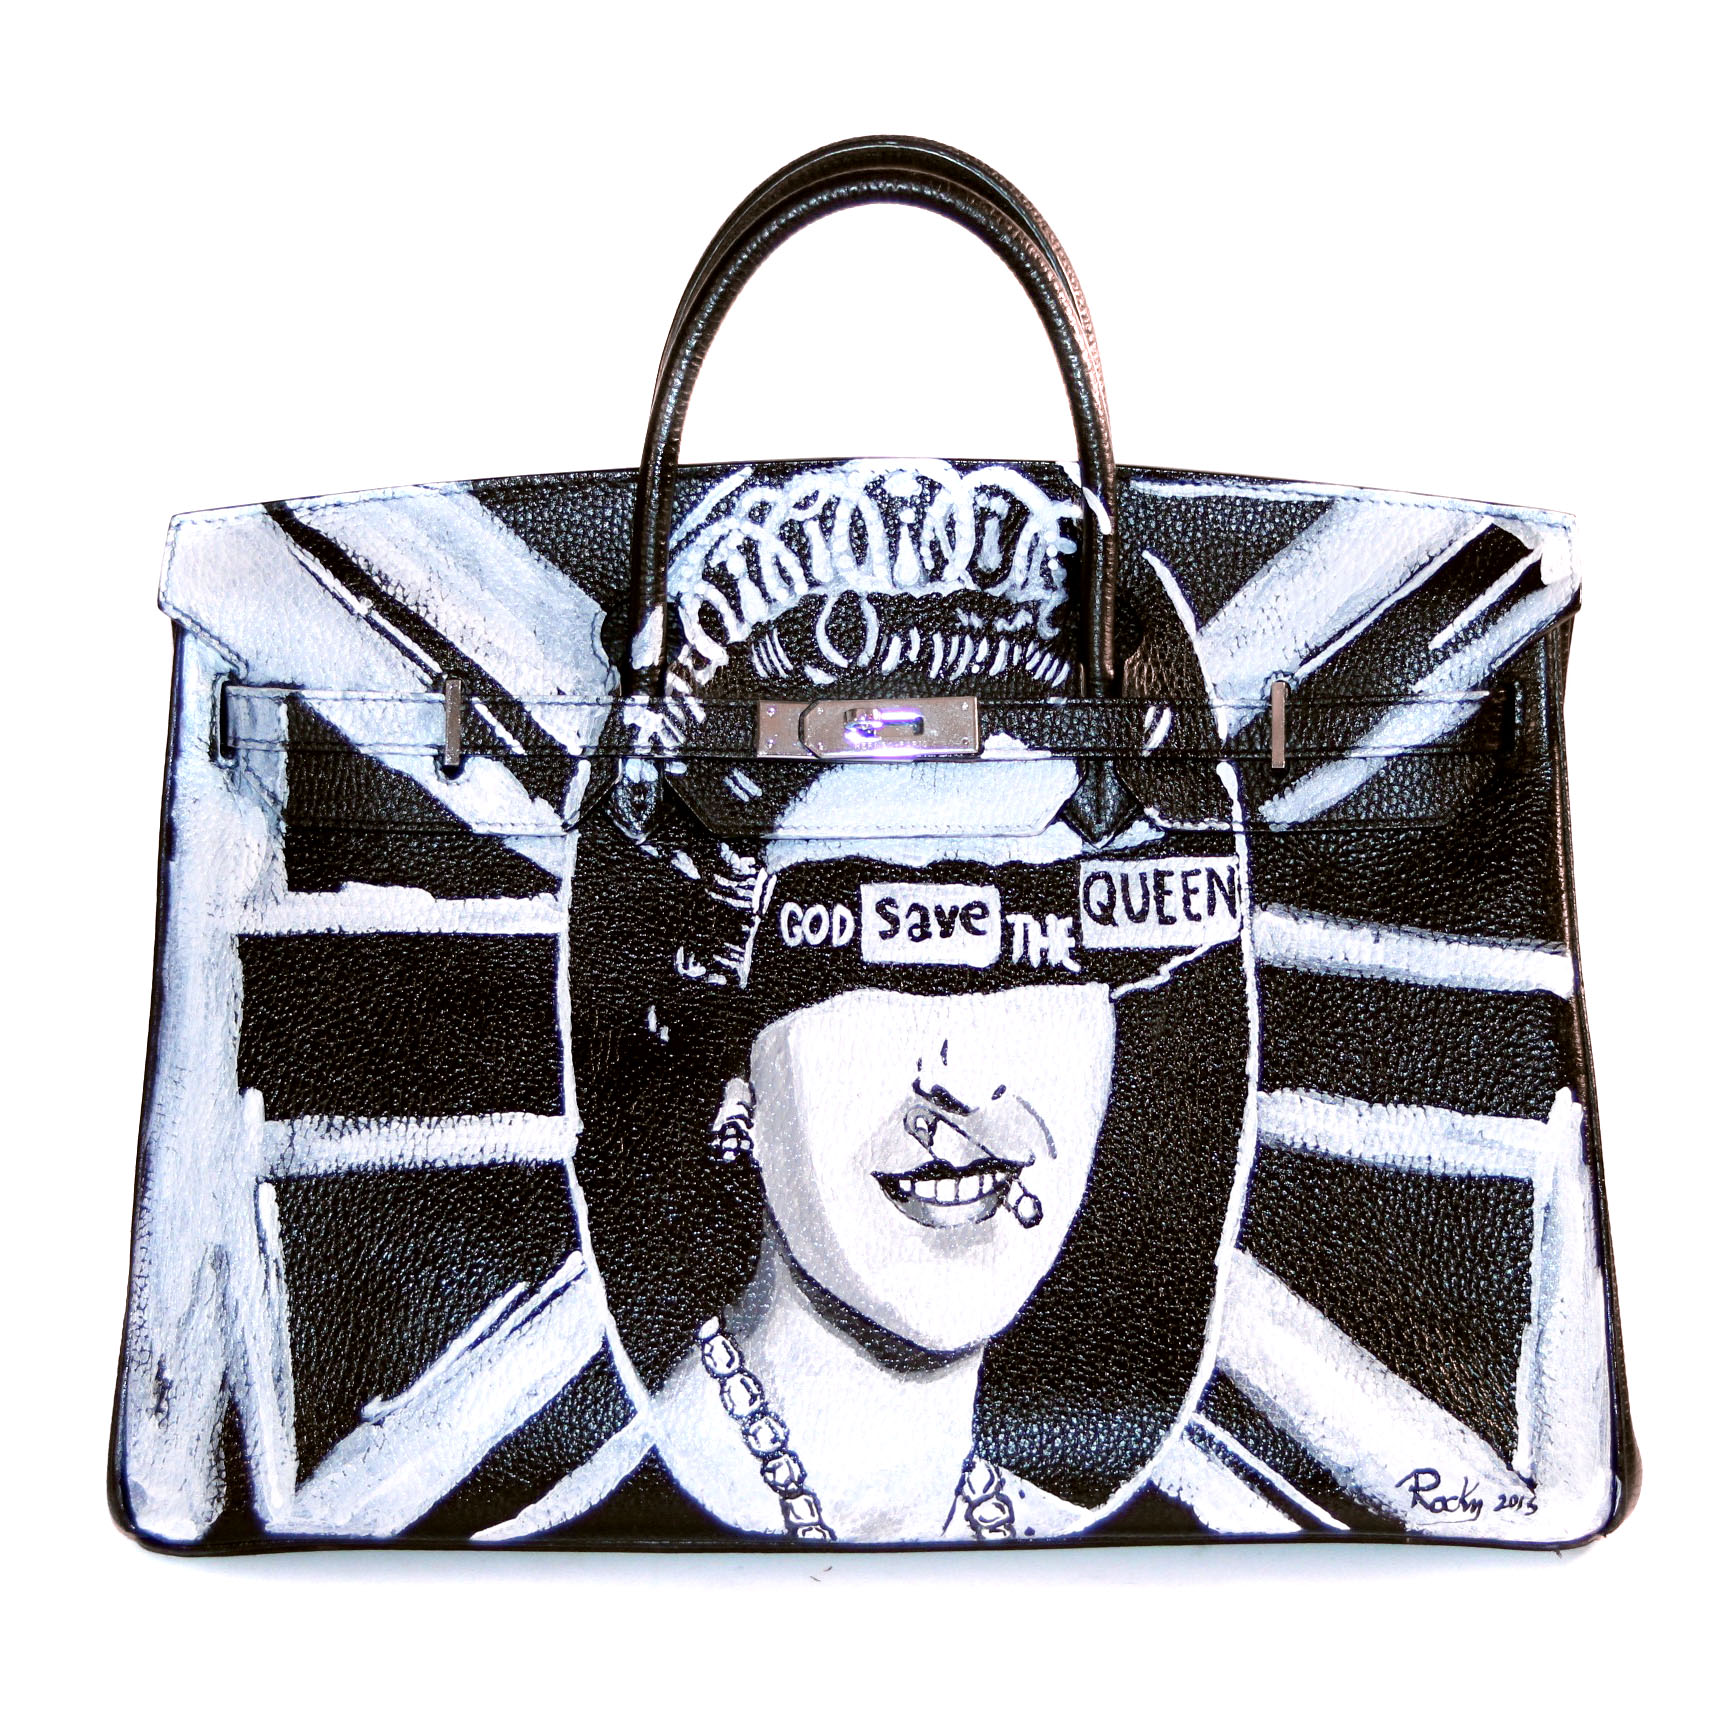 GOD SAVE THE QUEEN BLACK HERMES BIRKIN